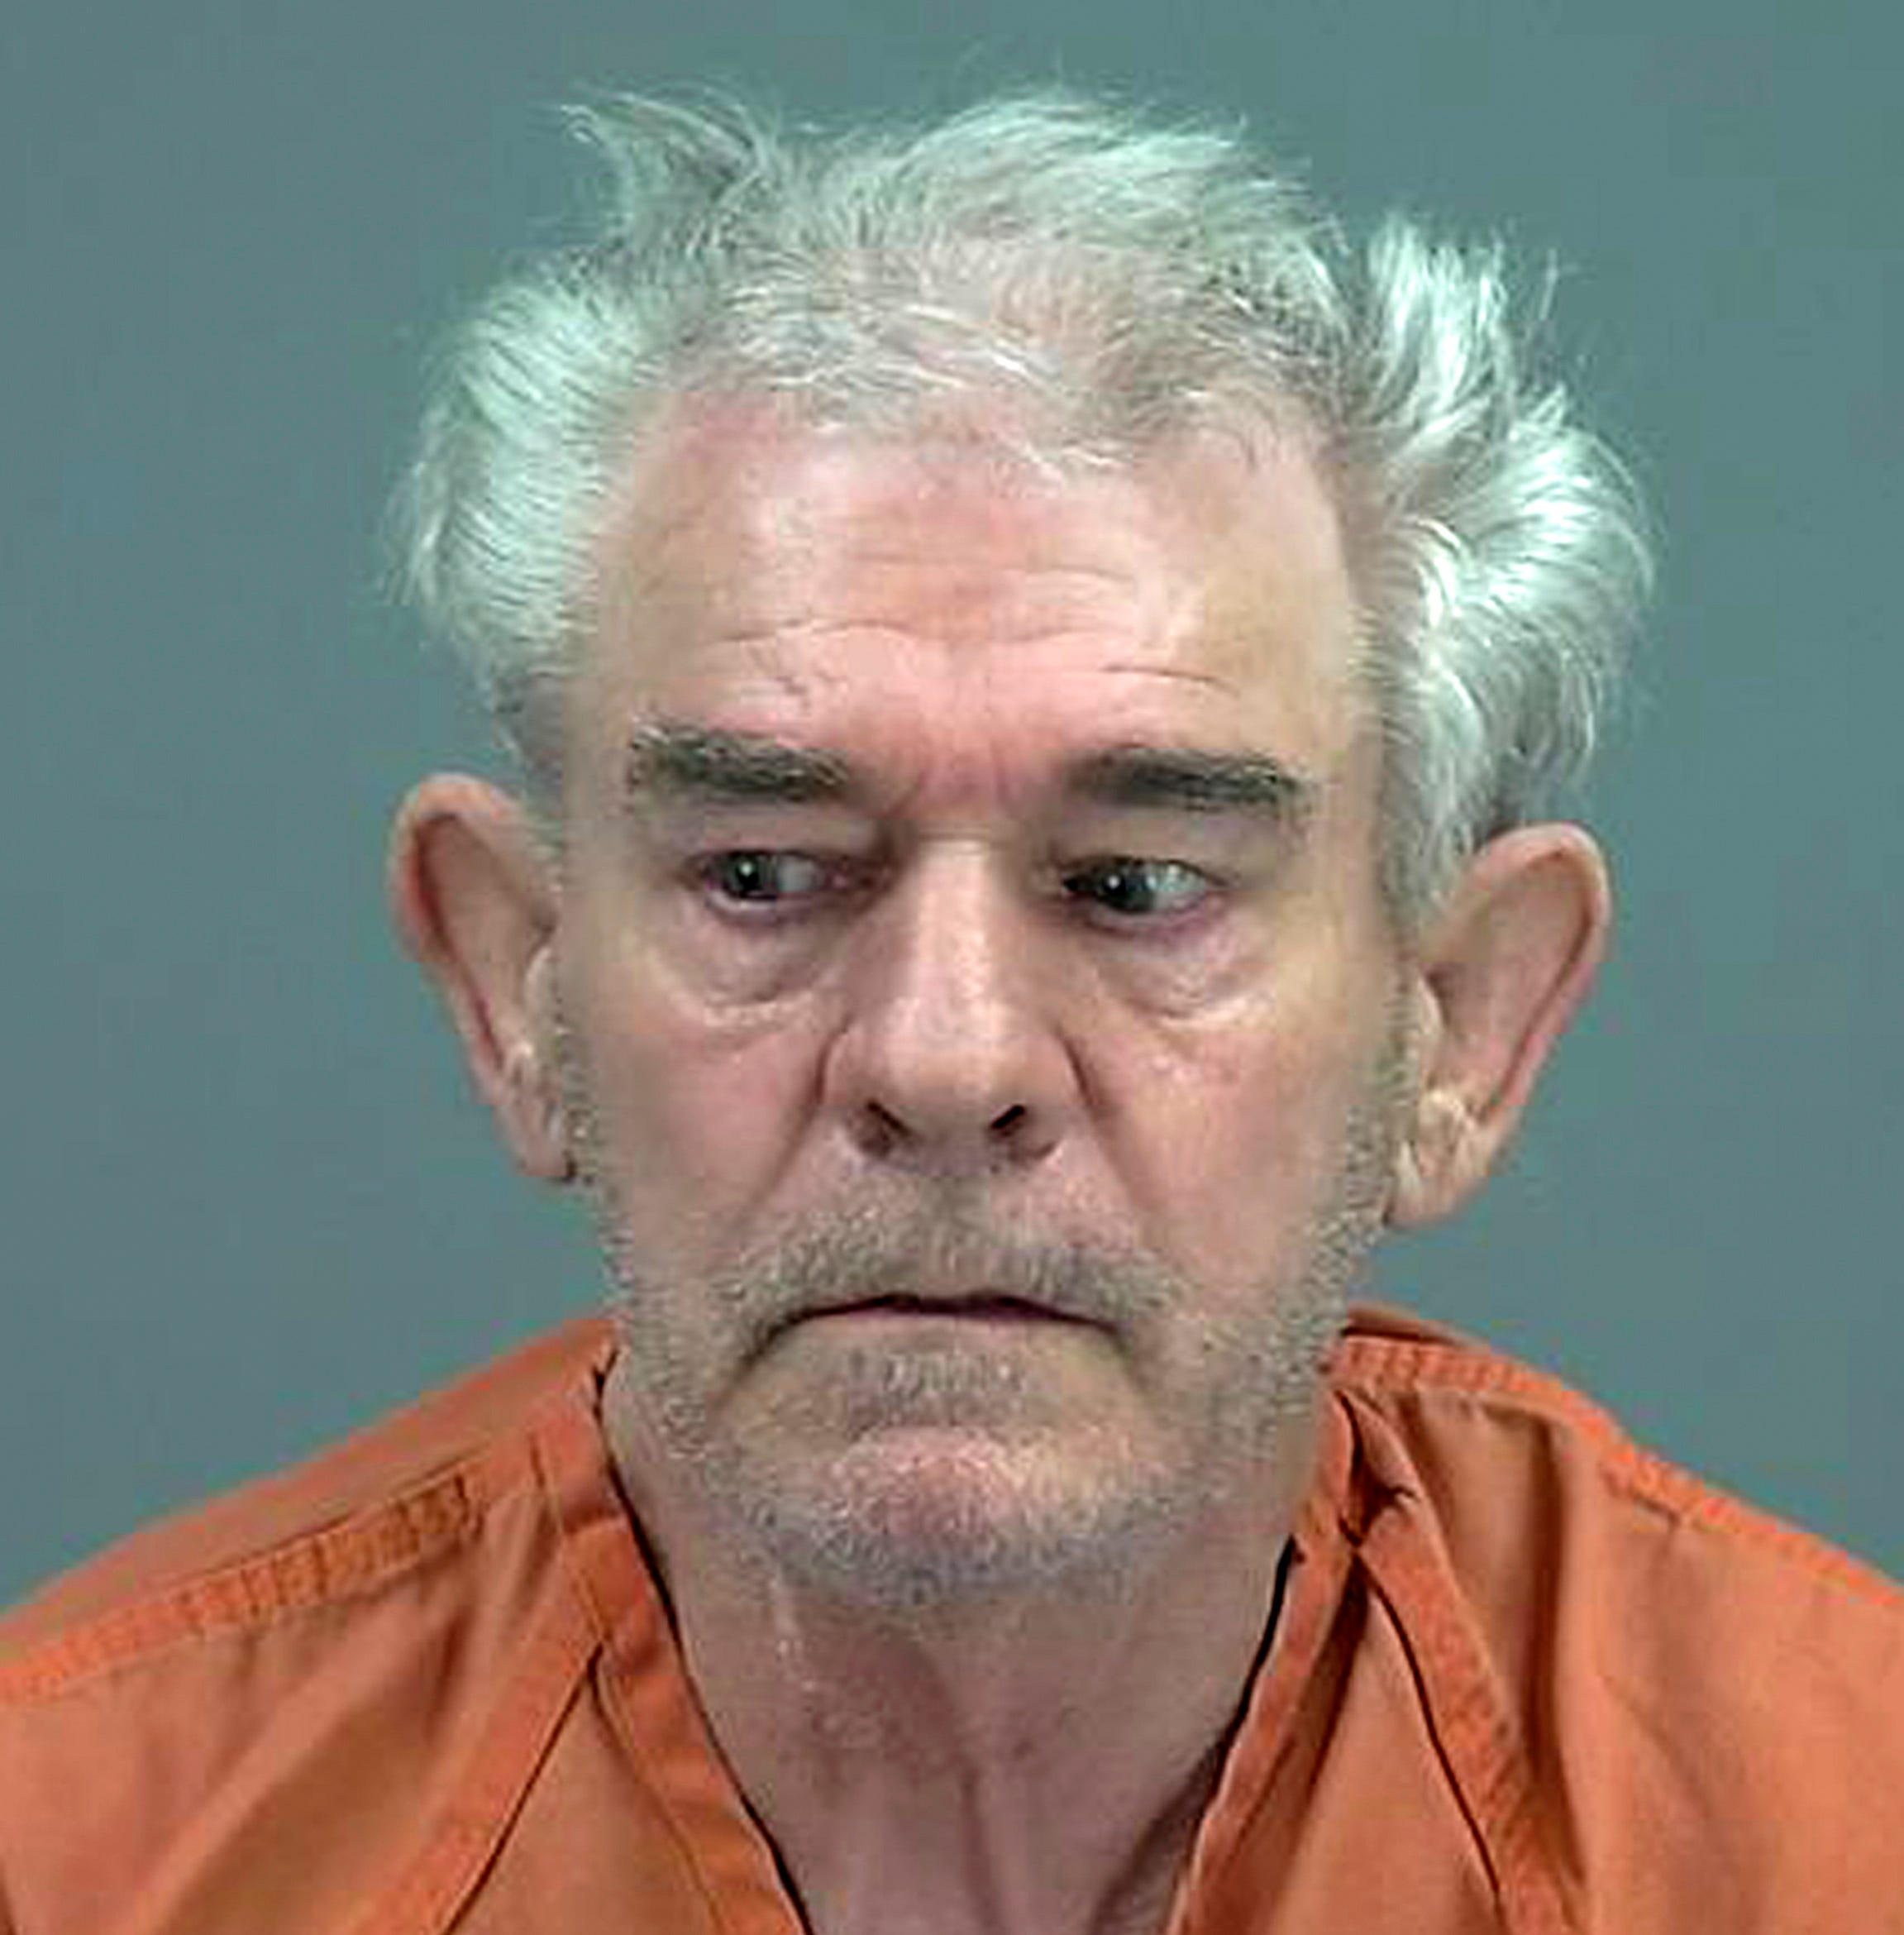 Man, 70, in underwear arrested after dead wife found naked in vehicle after El Paso stay